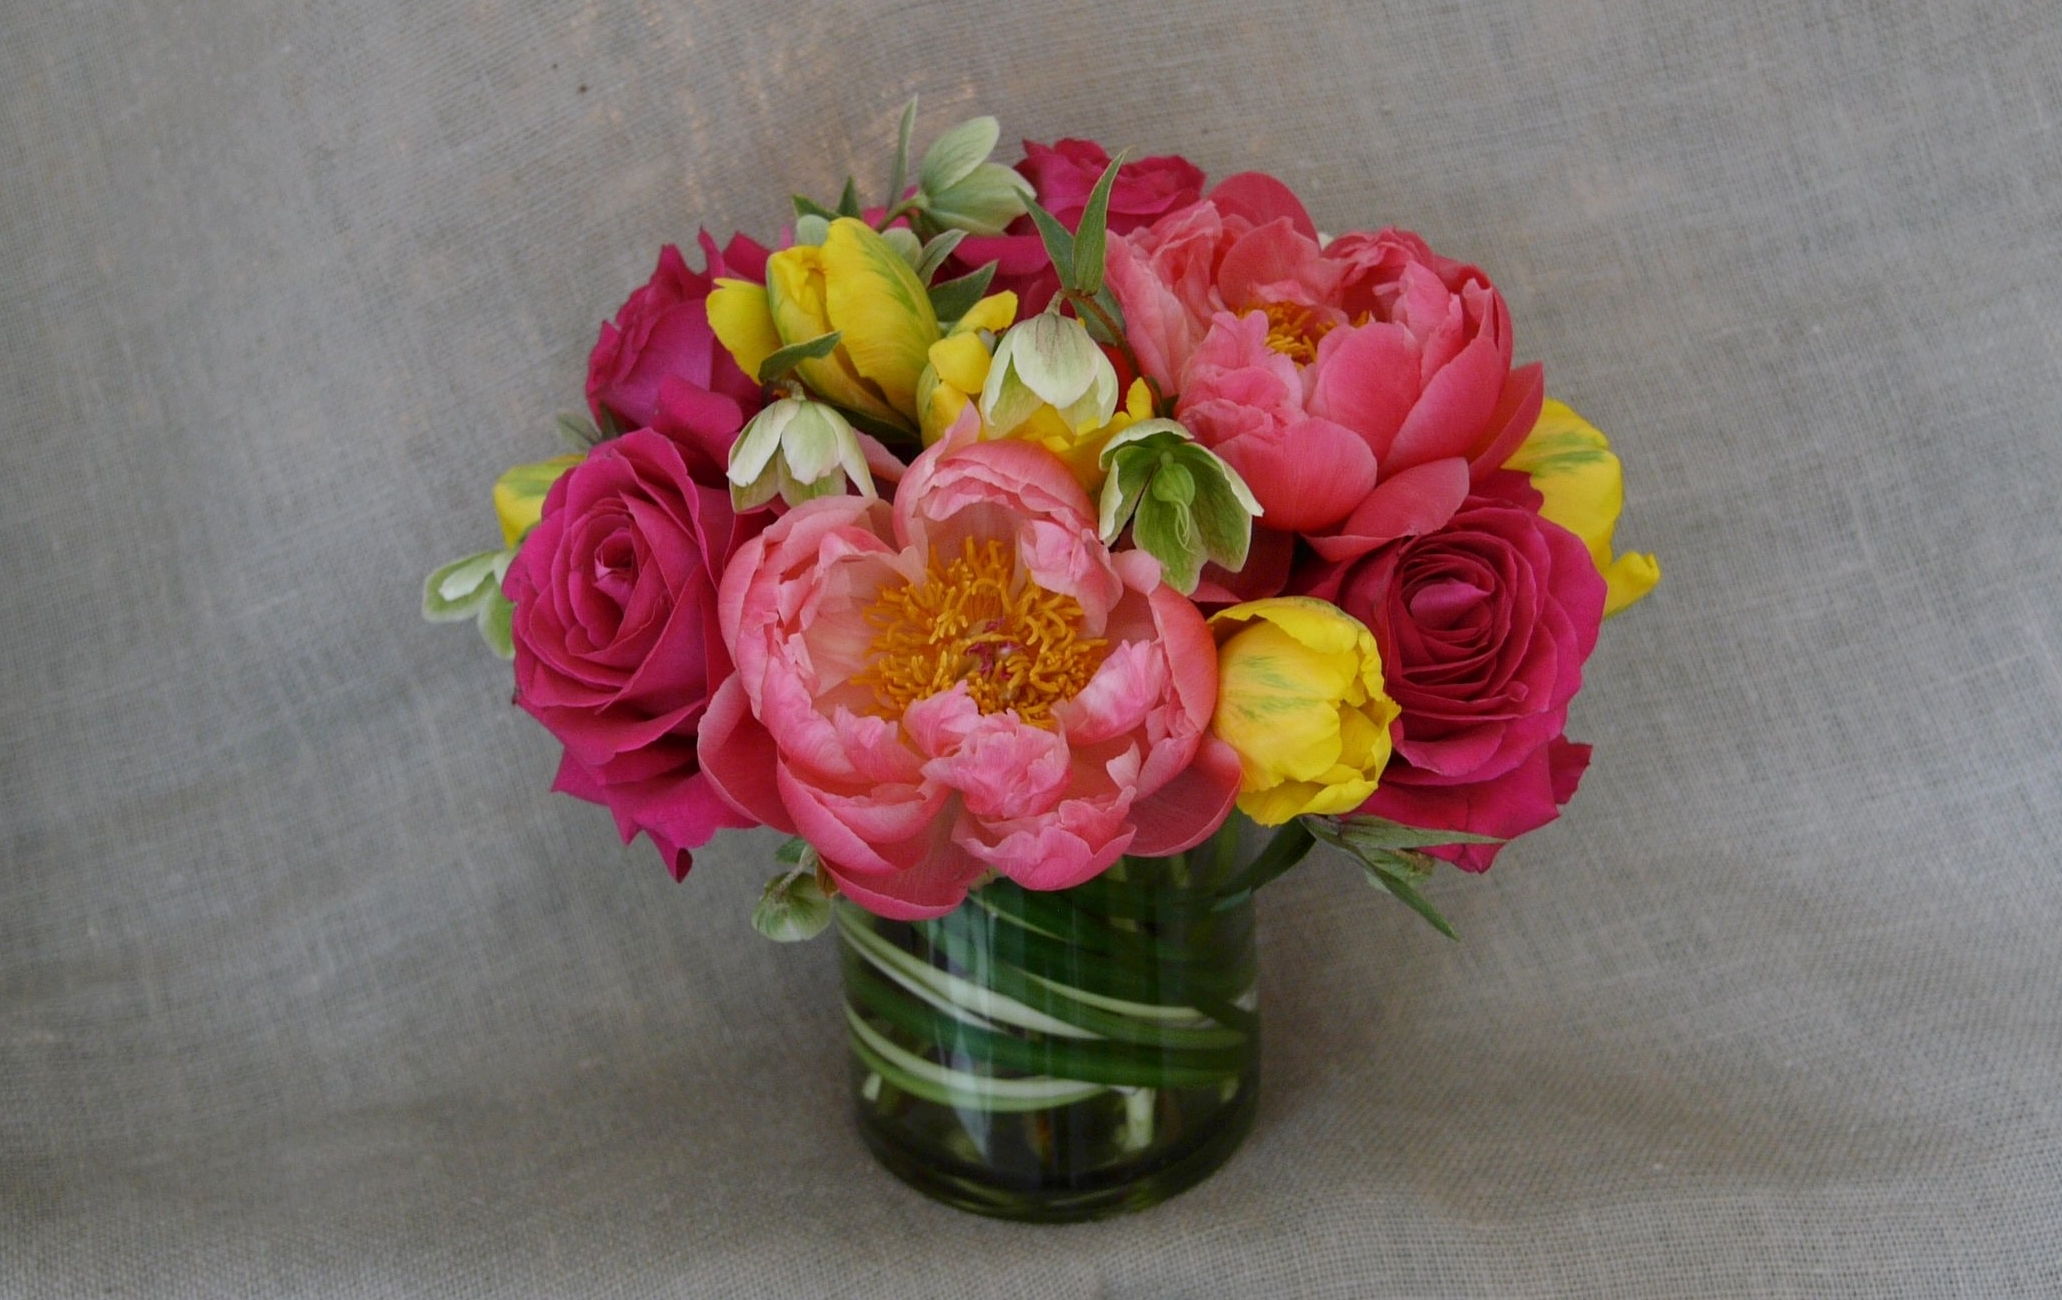 coral charm peonies with roses and tulips.jpg